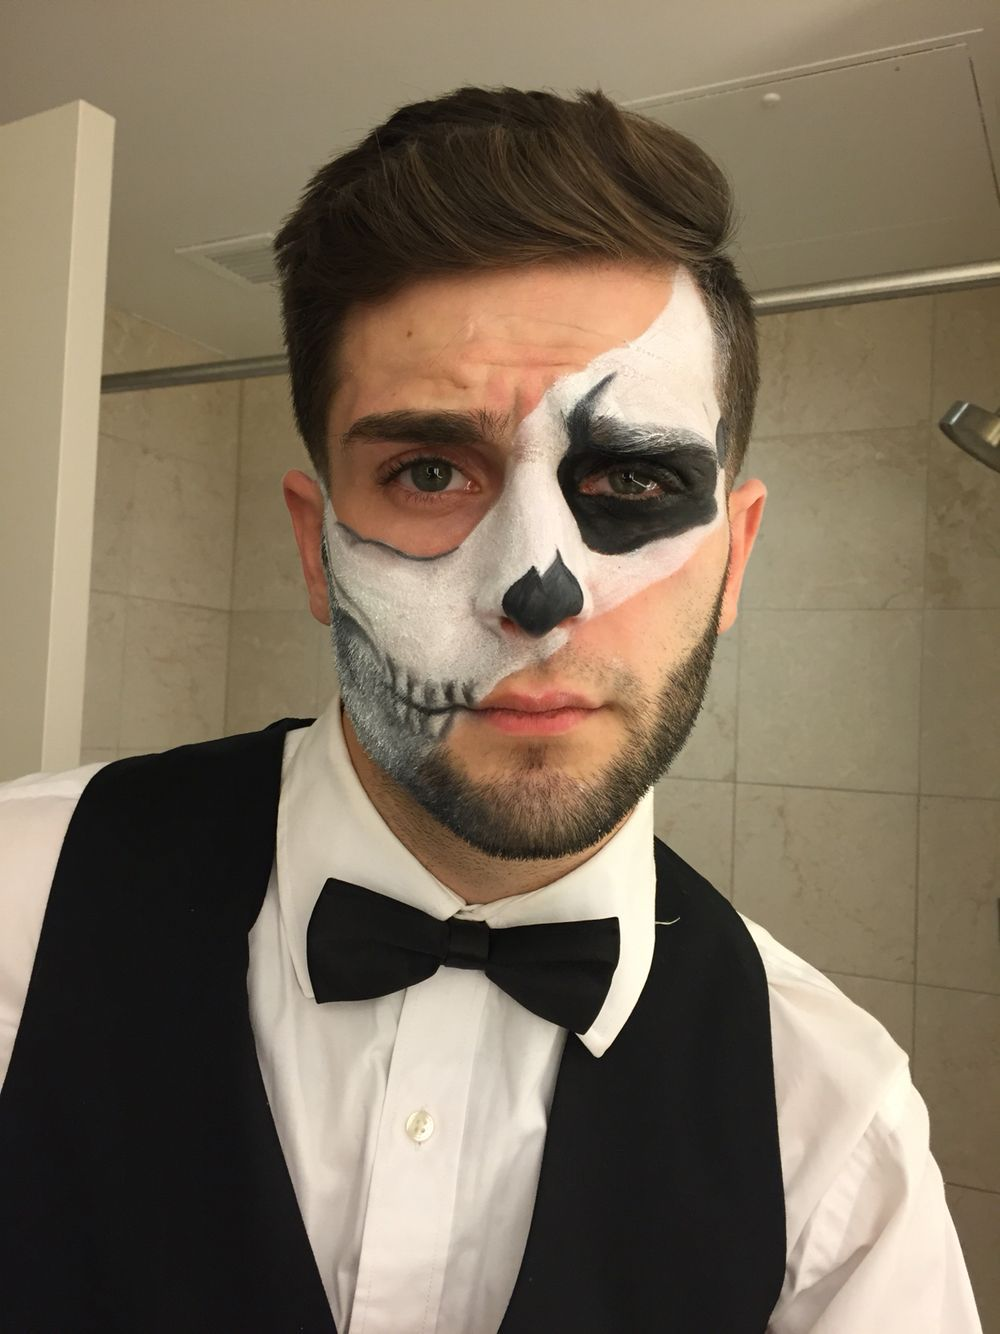 Maquillaje Para Halloween Hombre 2020 Make up for men, ideas and designs for modern men. Make up for